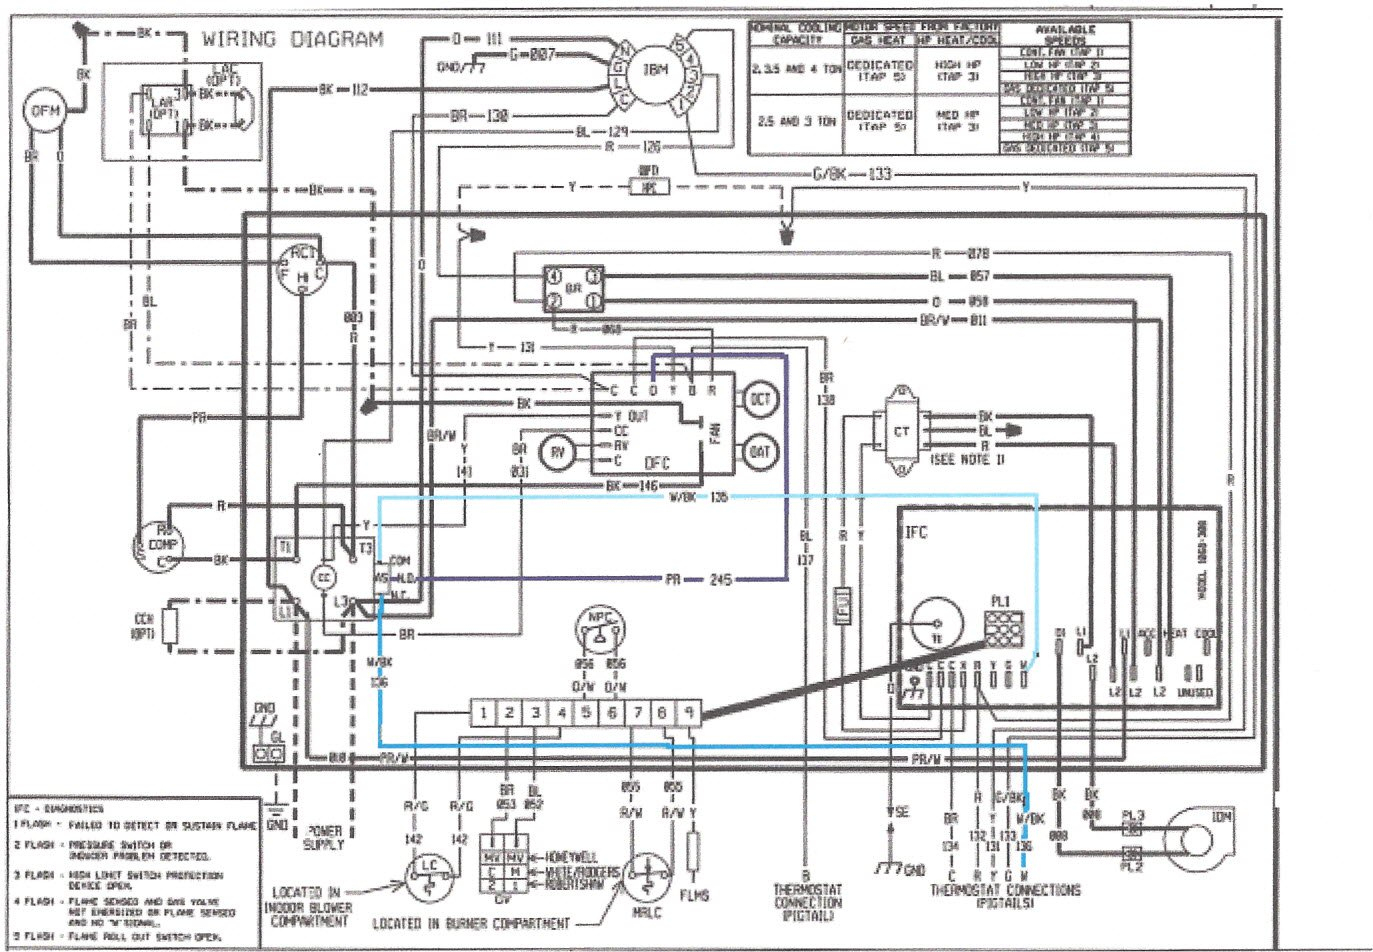 rheem thermostat wiring data wiring diagram updaterheem heat pump thermostat wiring diagram wiring diagram rheem e1 thermostat rheem heat pump thermostat wiring